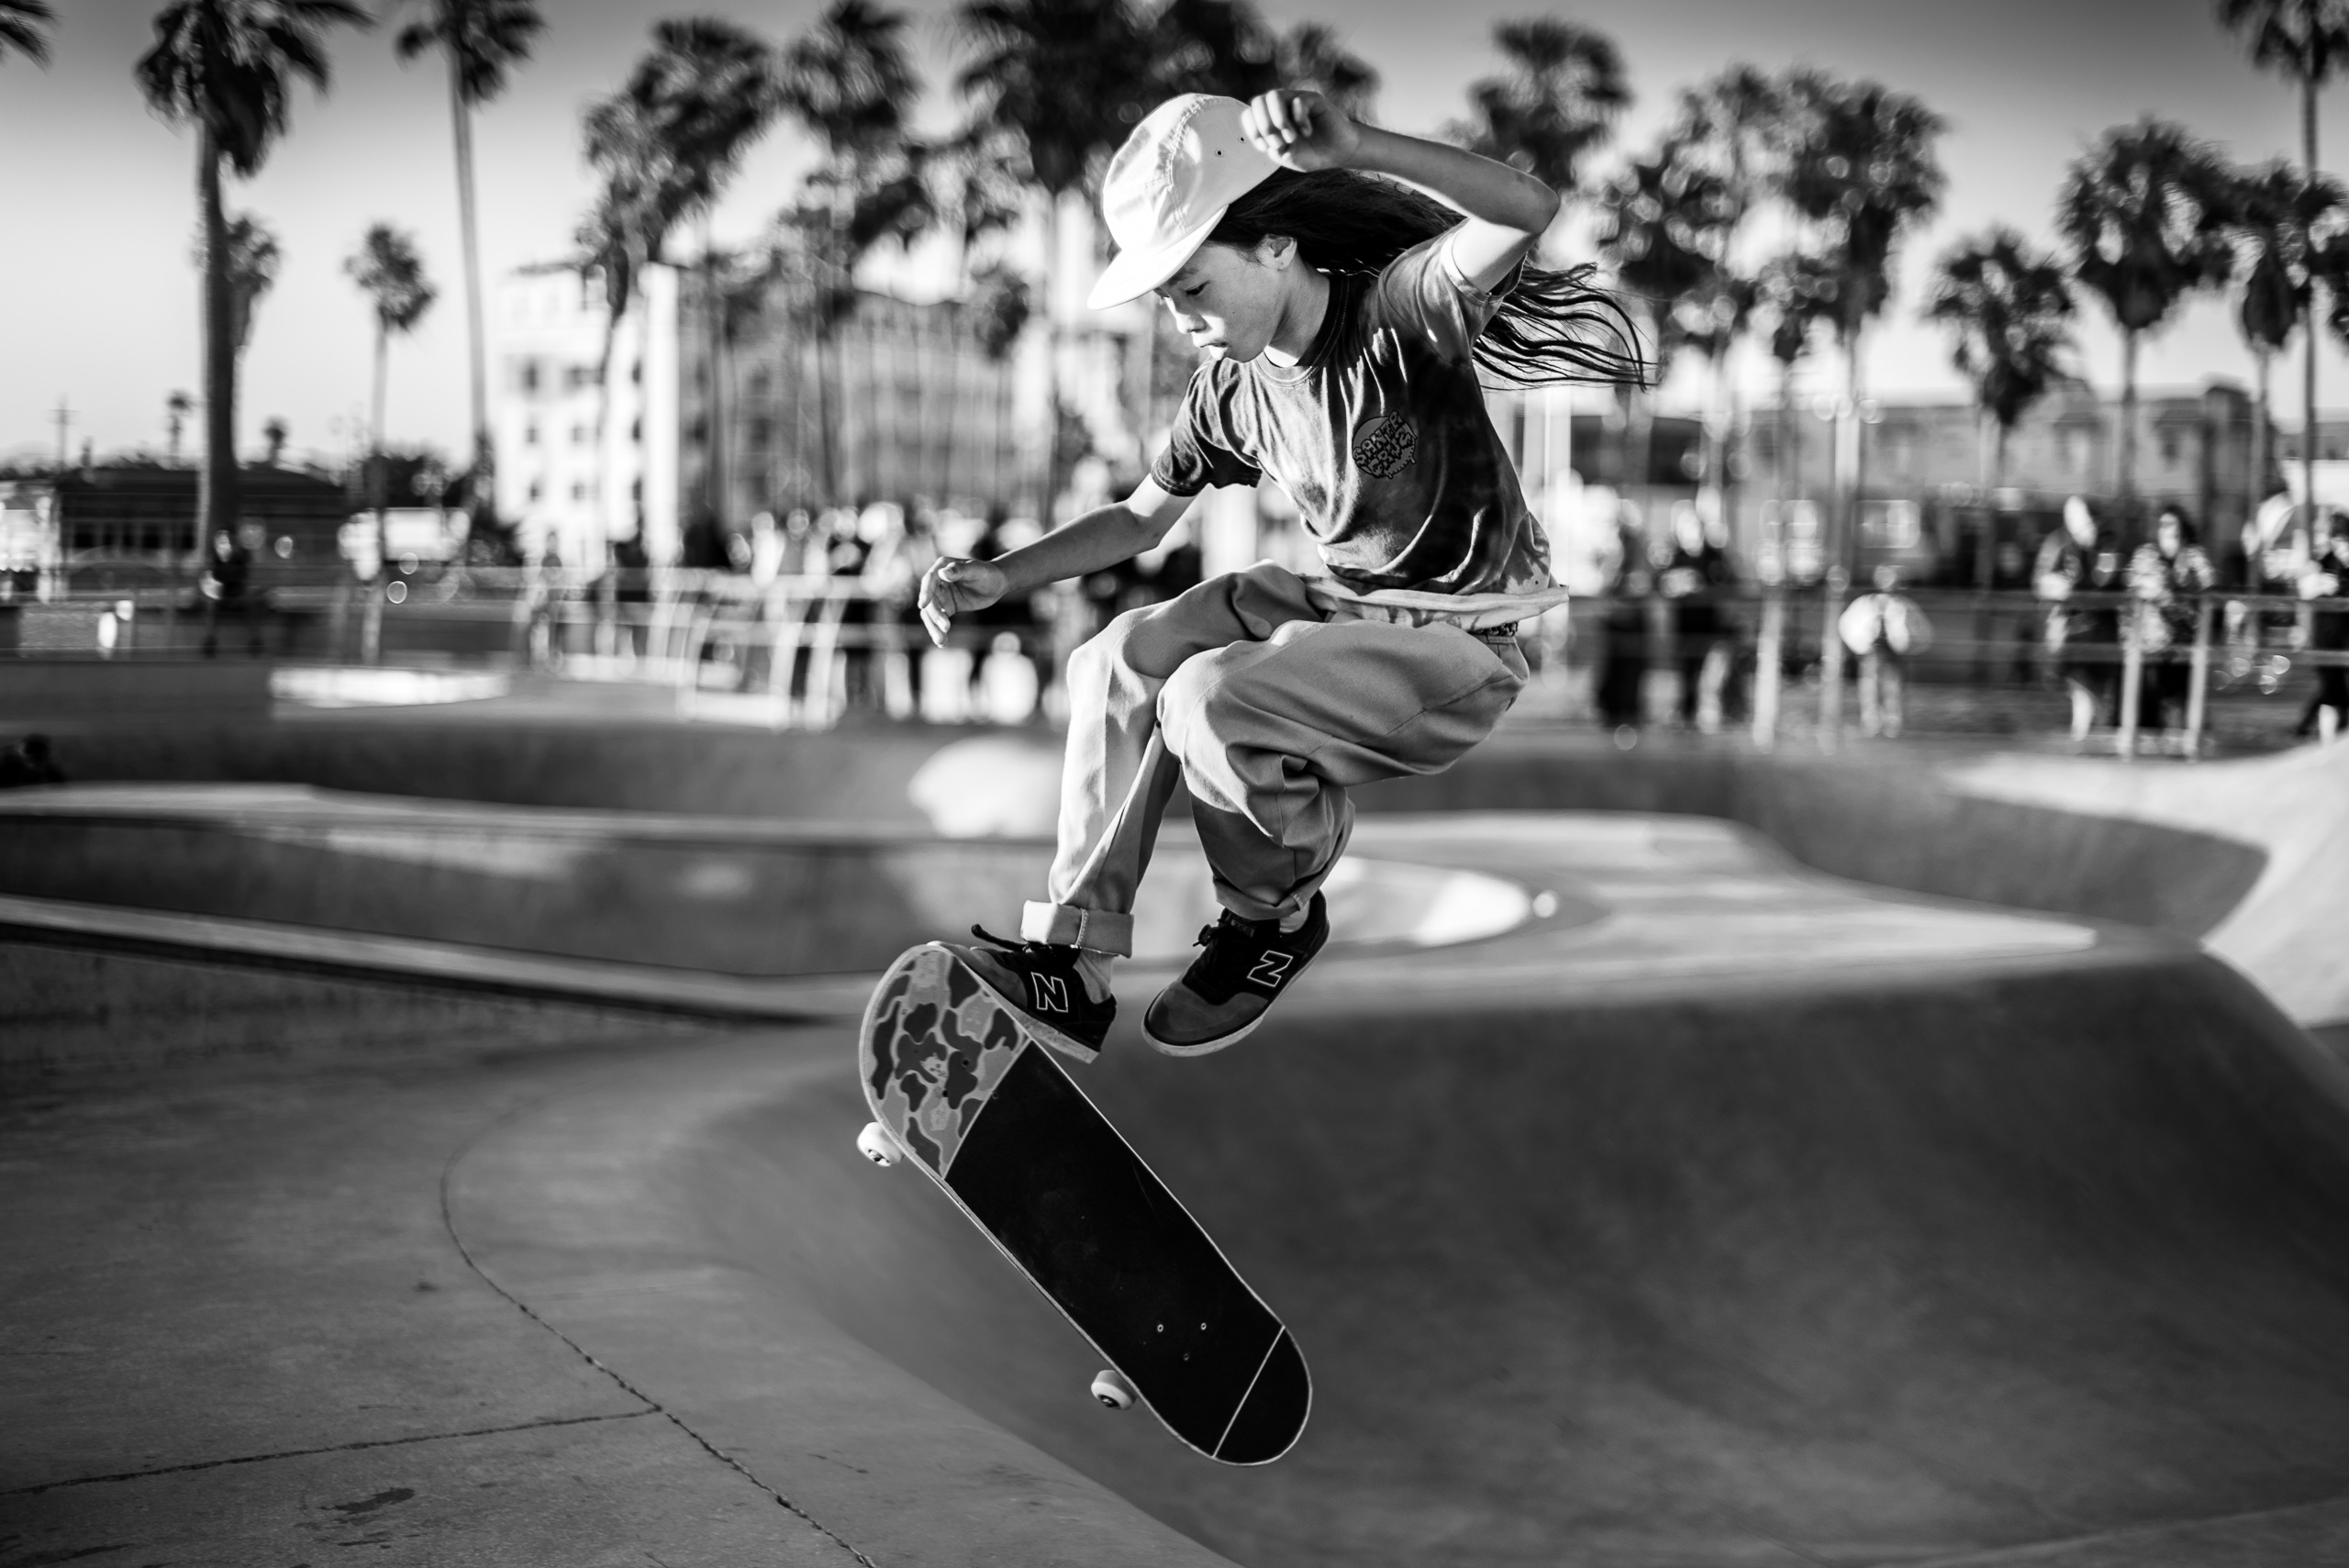 a young skateboarder catches a lot of air at the Skate Park in Venice Beach, CA